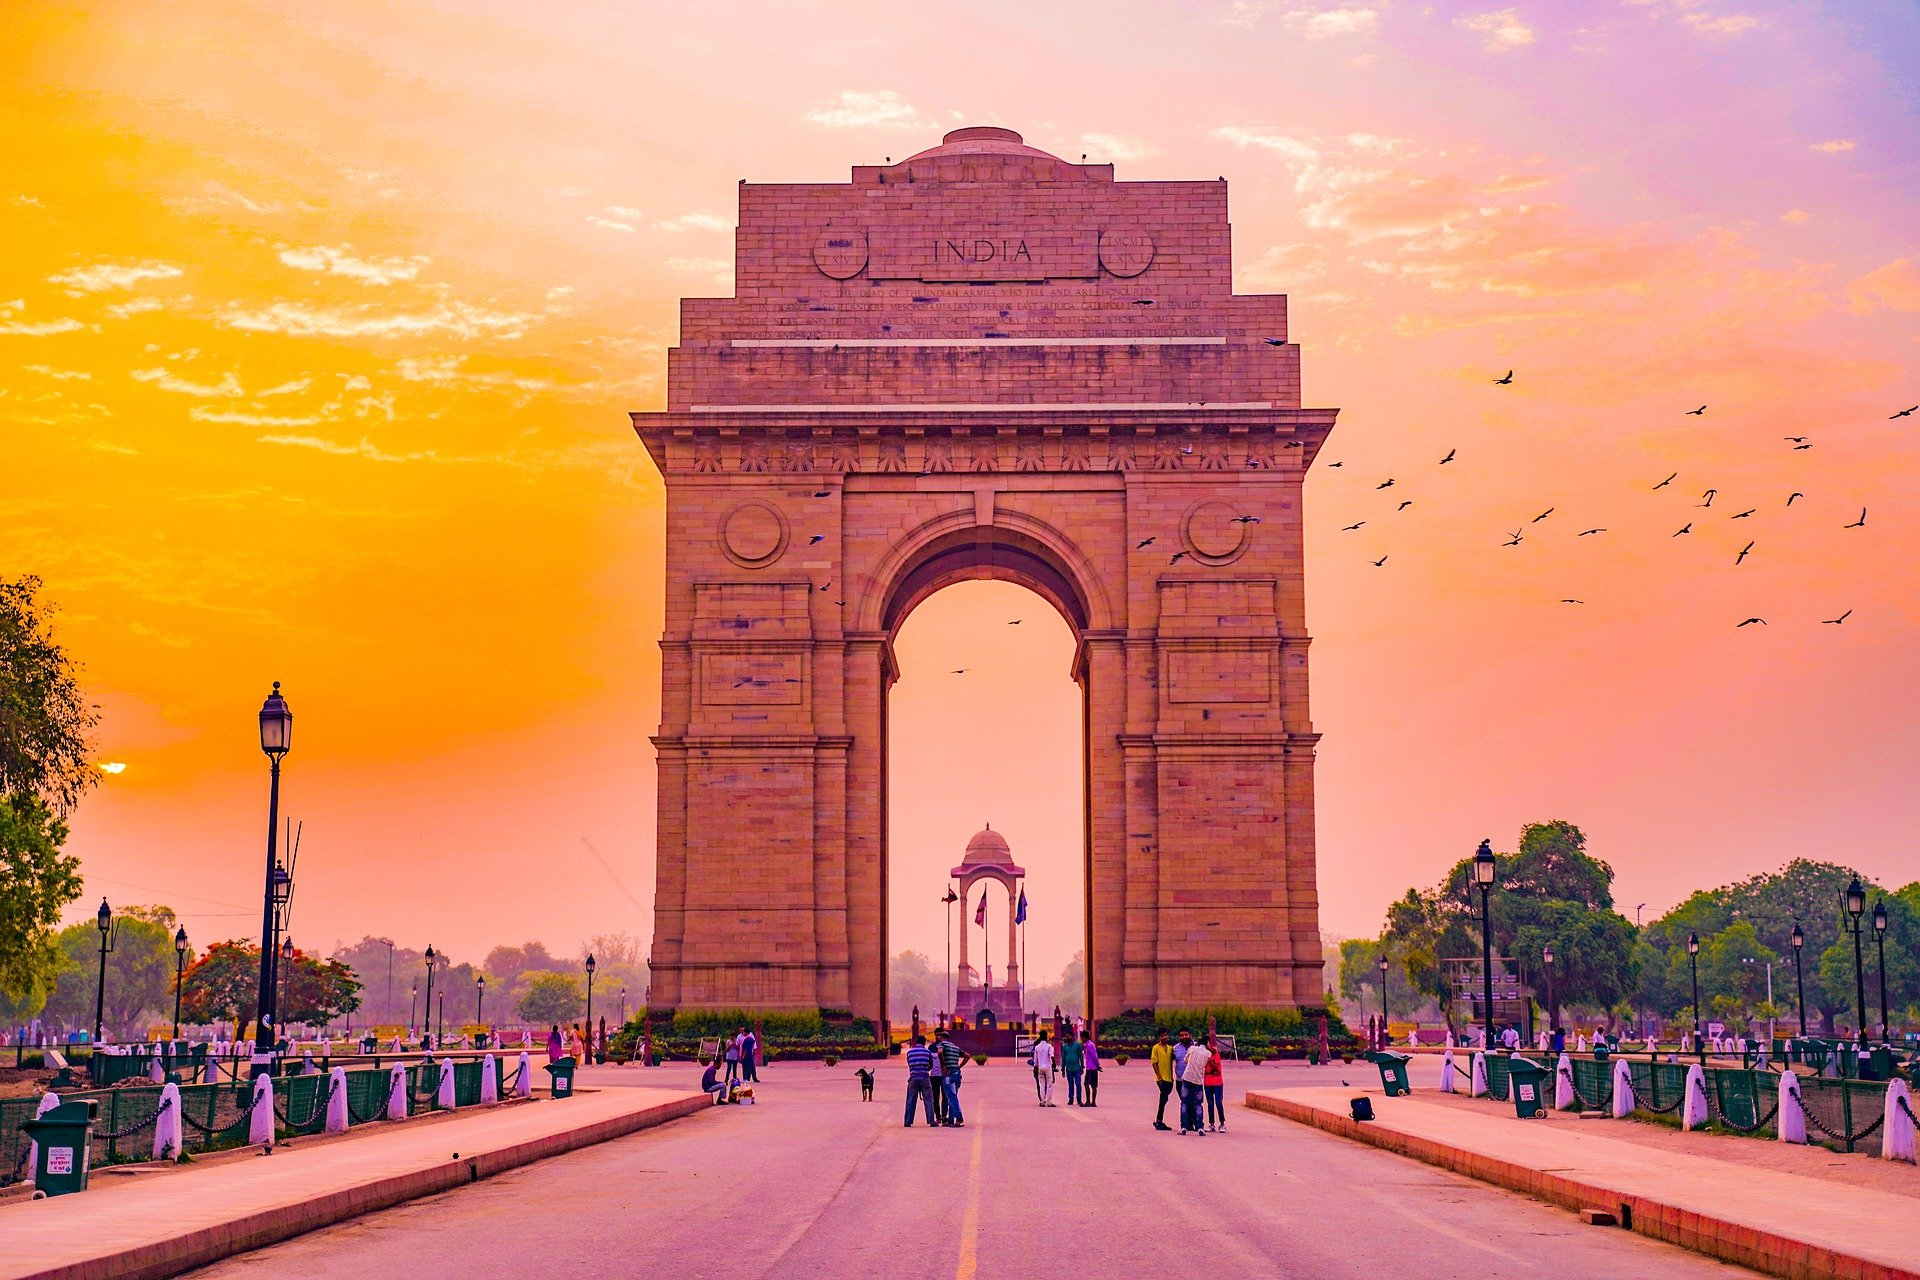 See the India Gate in Delhi